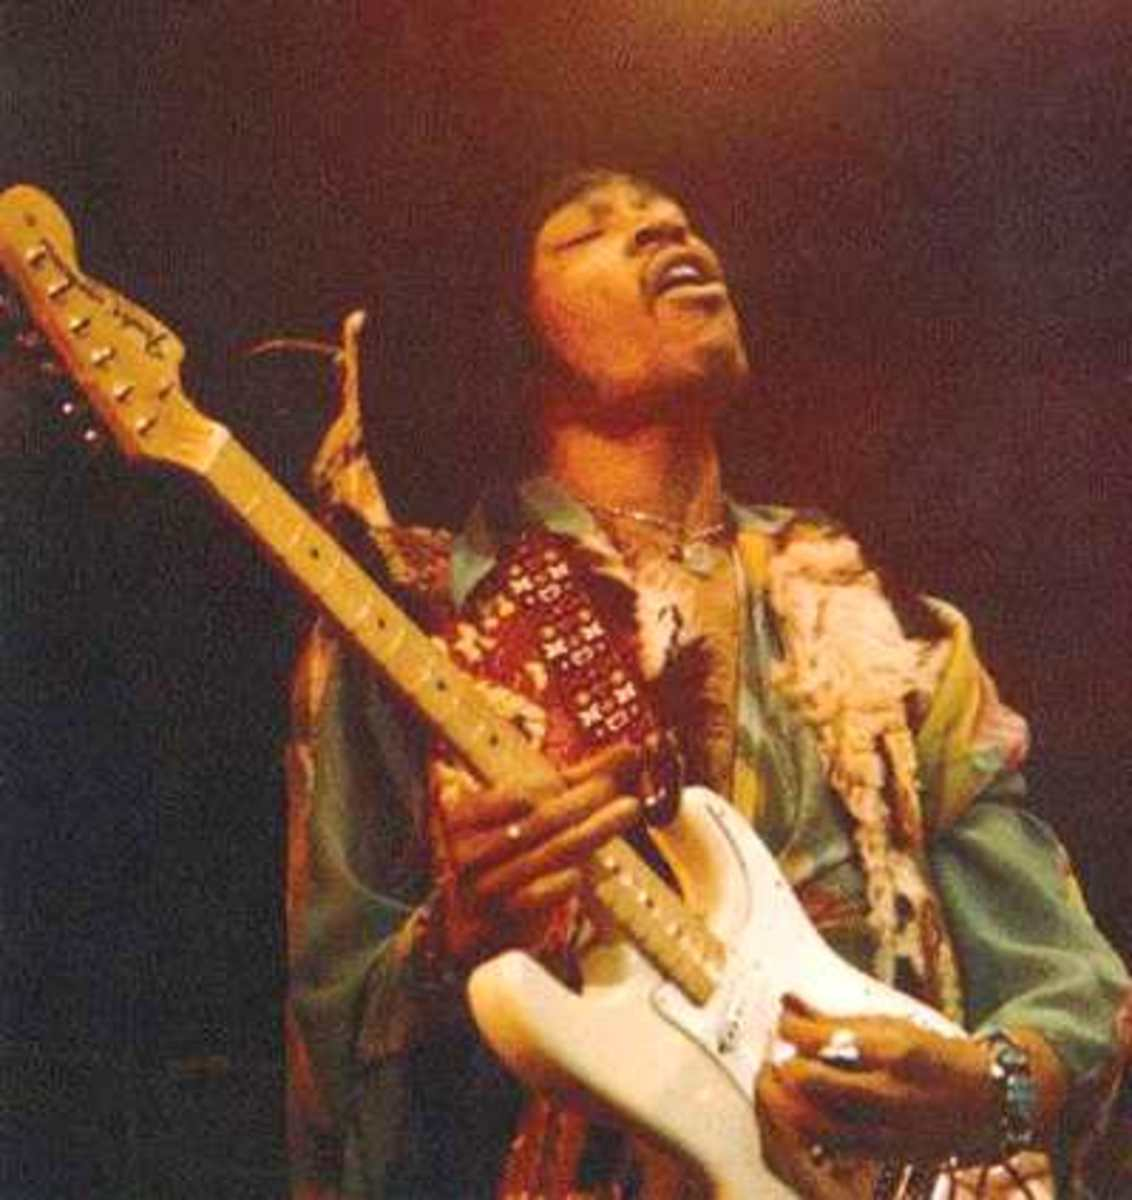 Jimi Hendrix :  One of the Greatest Musicians That Ever Lived